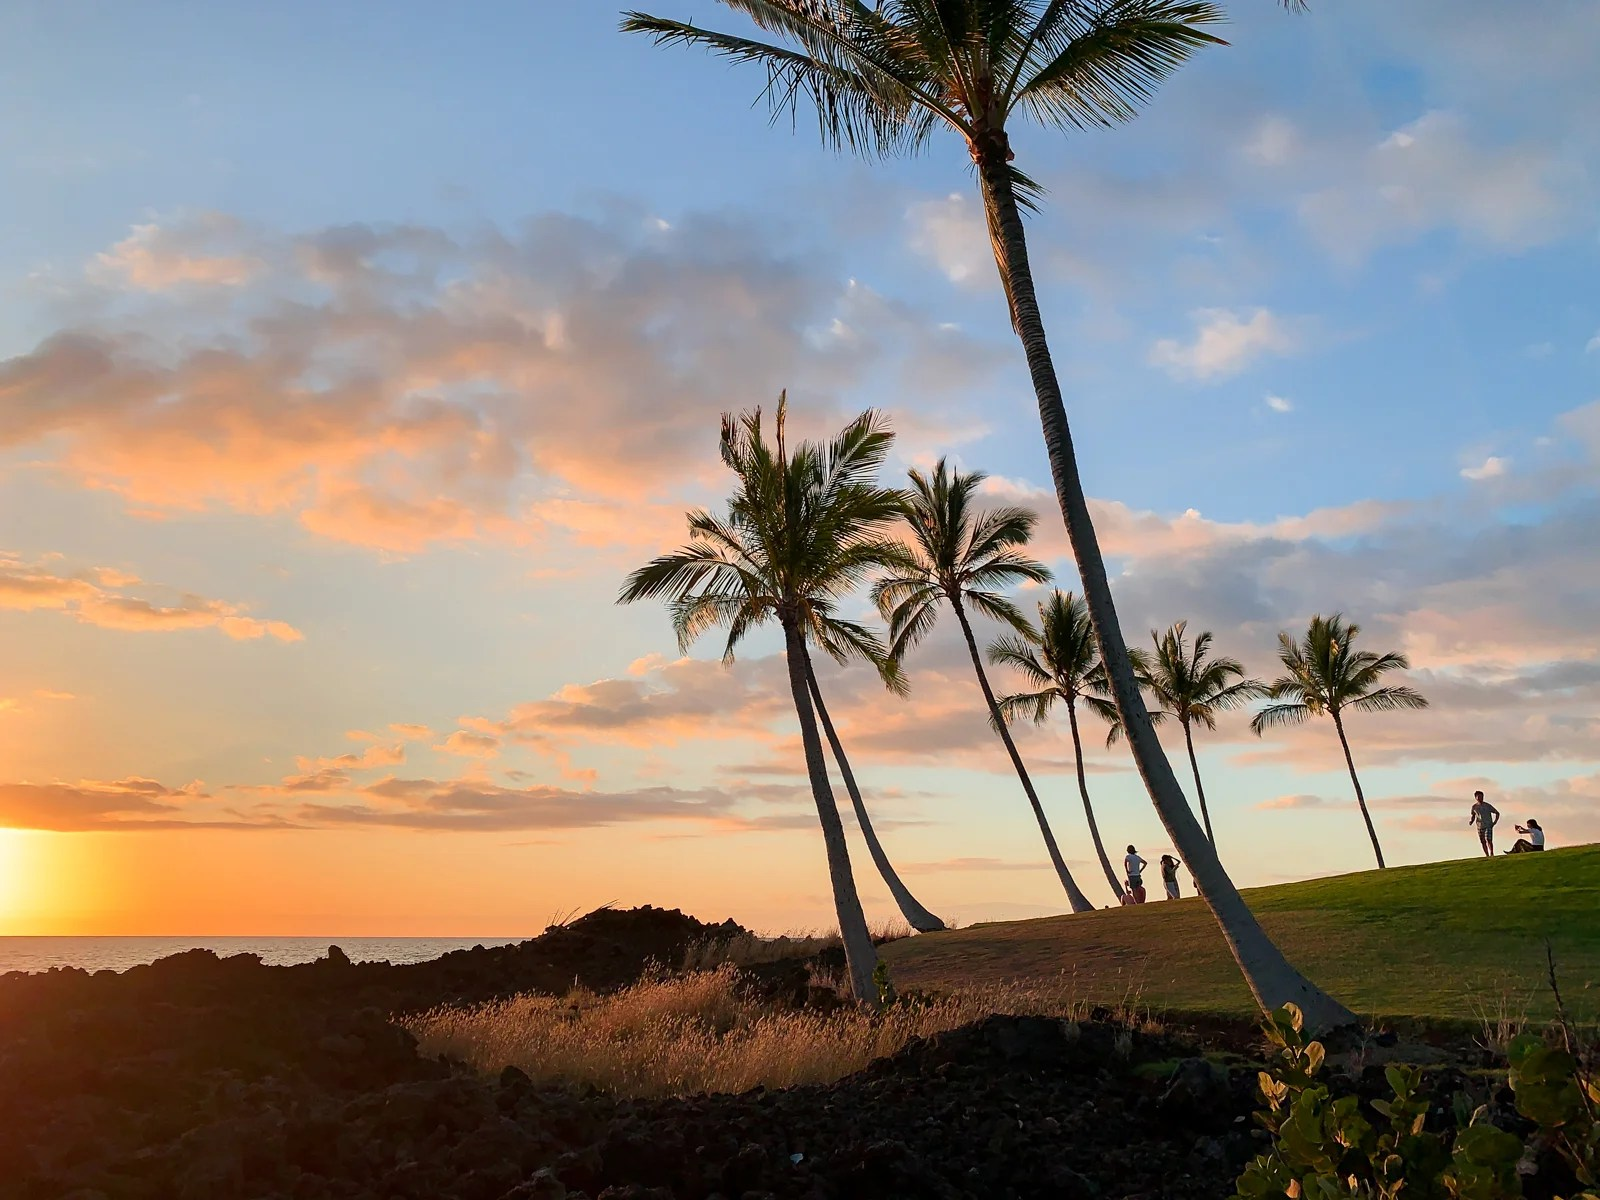 How to Use Hilton Points for a Hawaiian Vacation